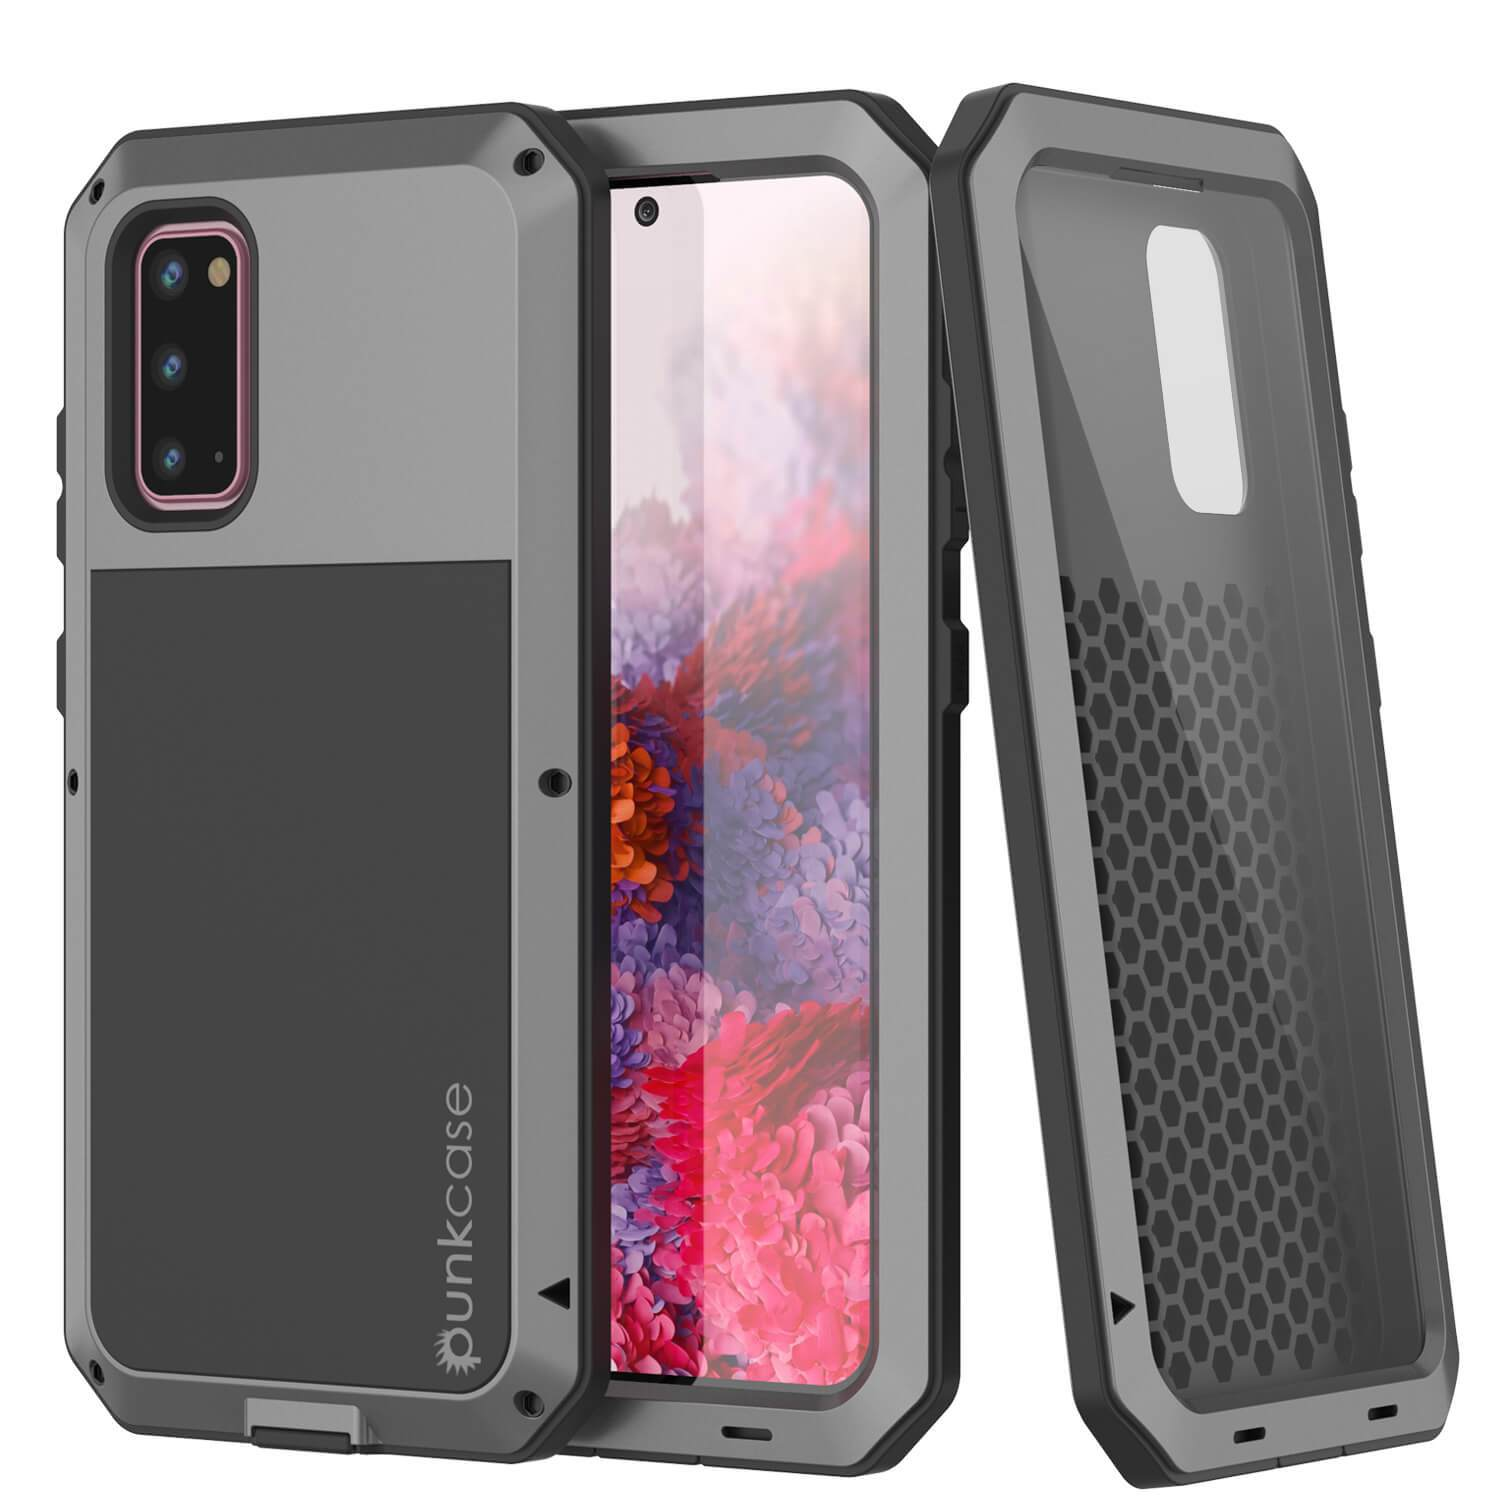 Galaxy s20 Metal Case, Heavy Duty Military Grade Rugged Armor Cover [Silver]